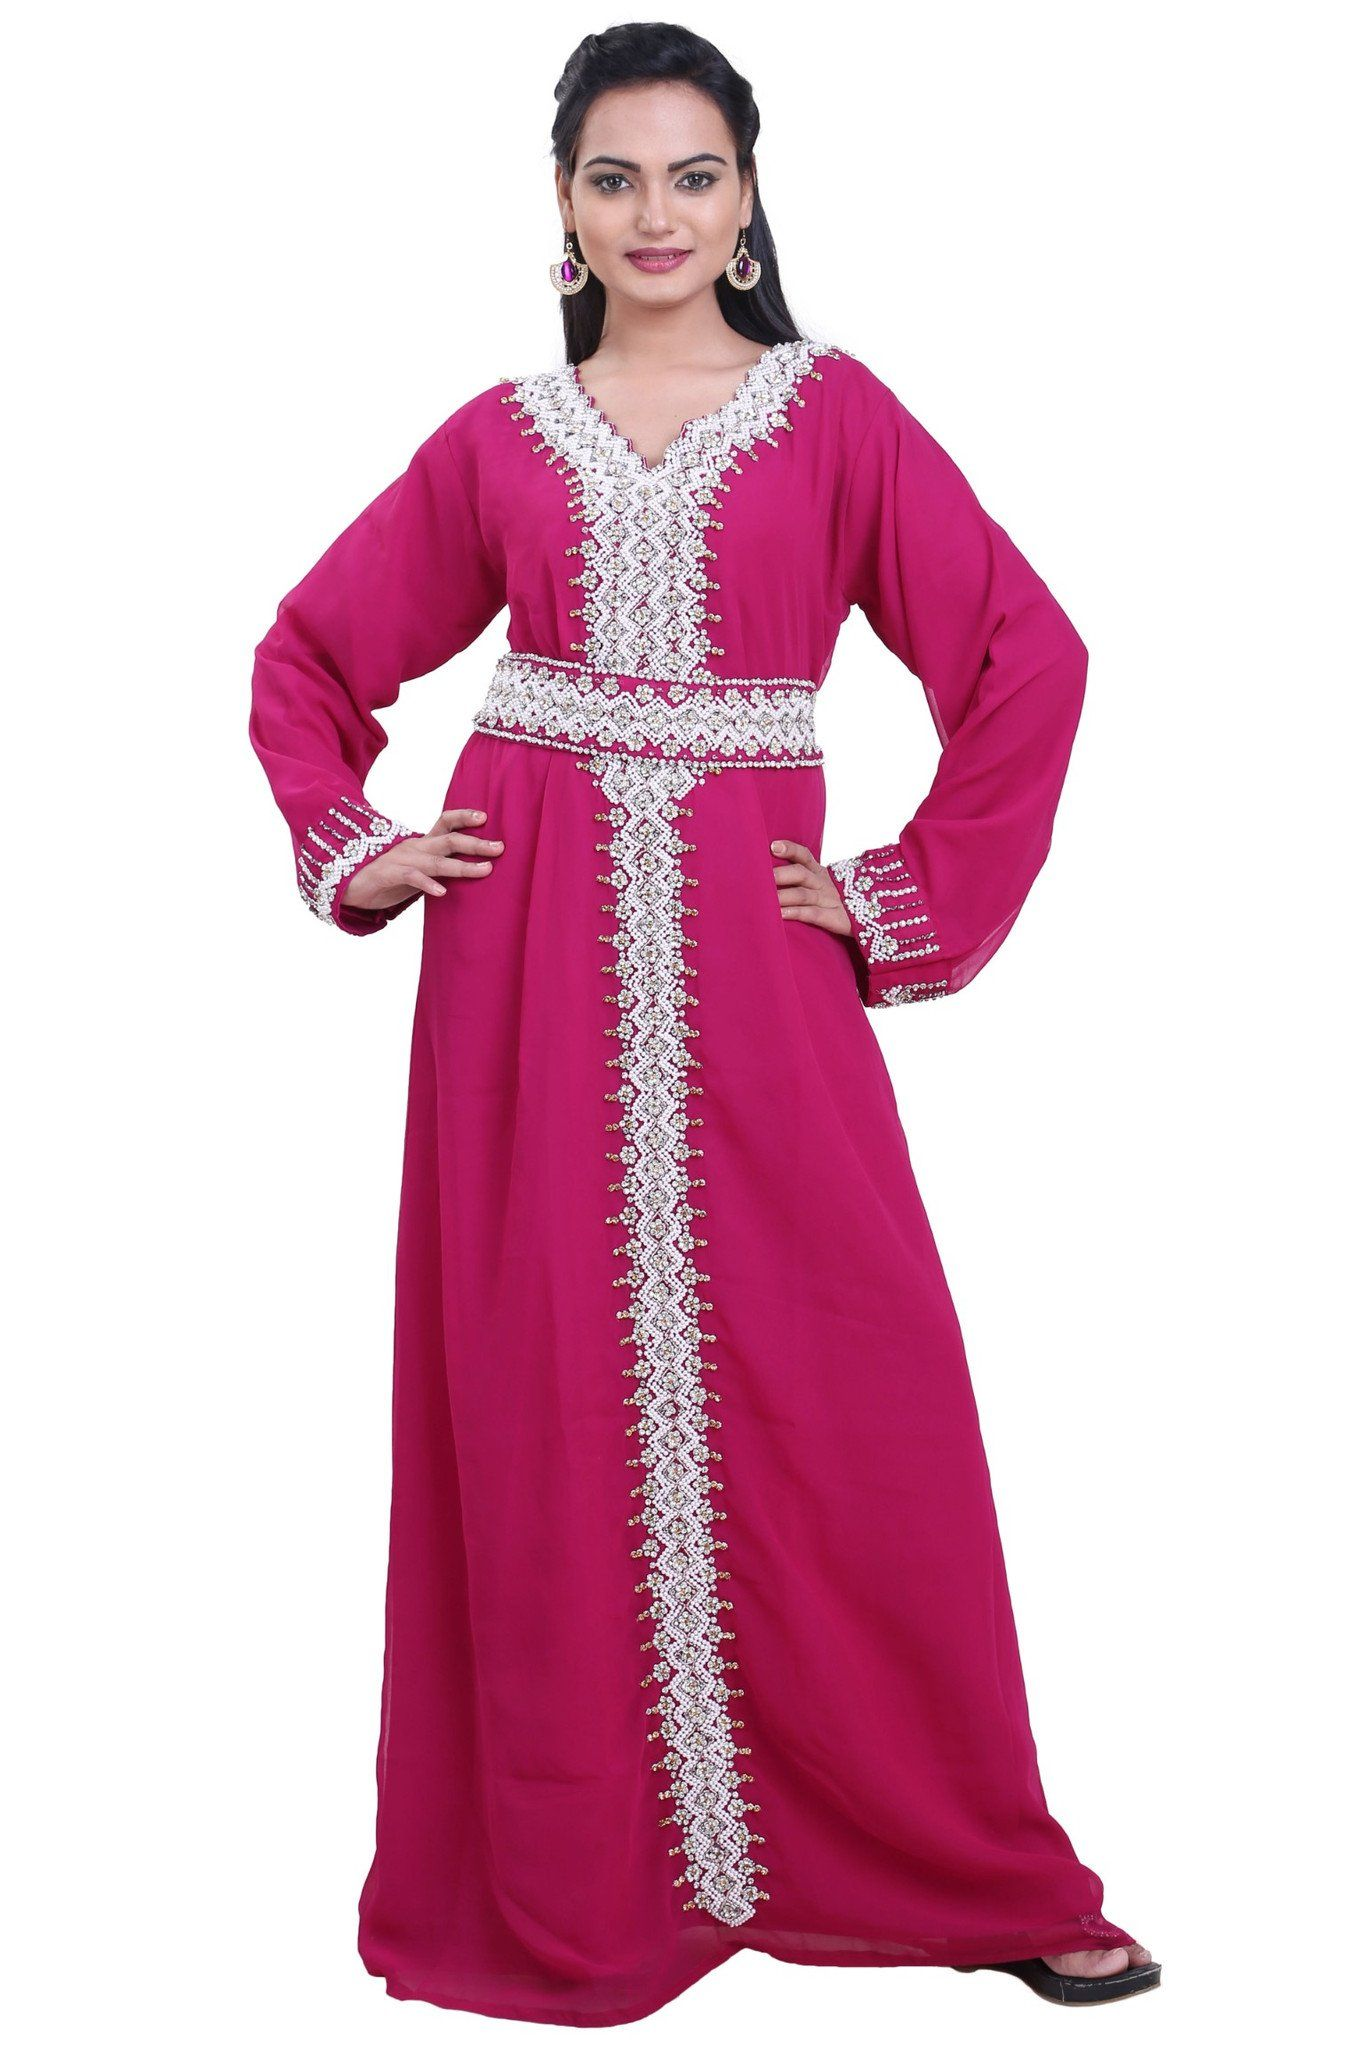 Afaf Dubai Kaftan Women Dress | Products | Pinterest